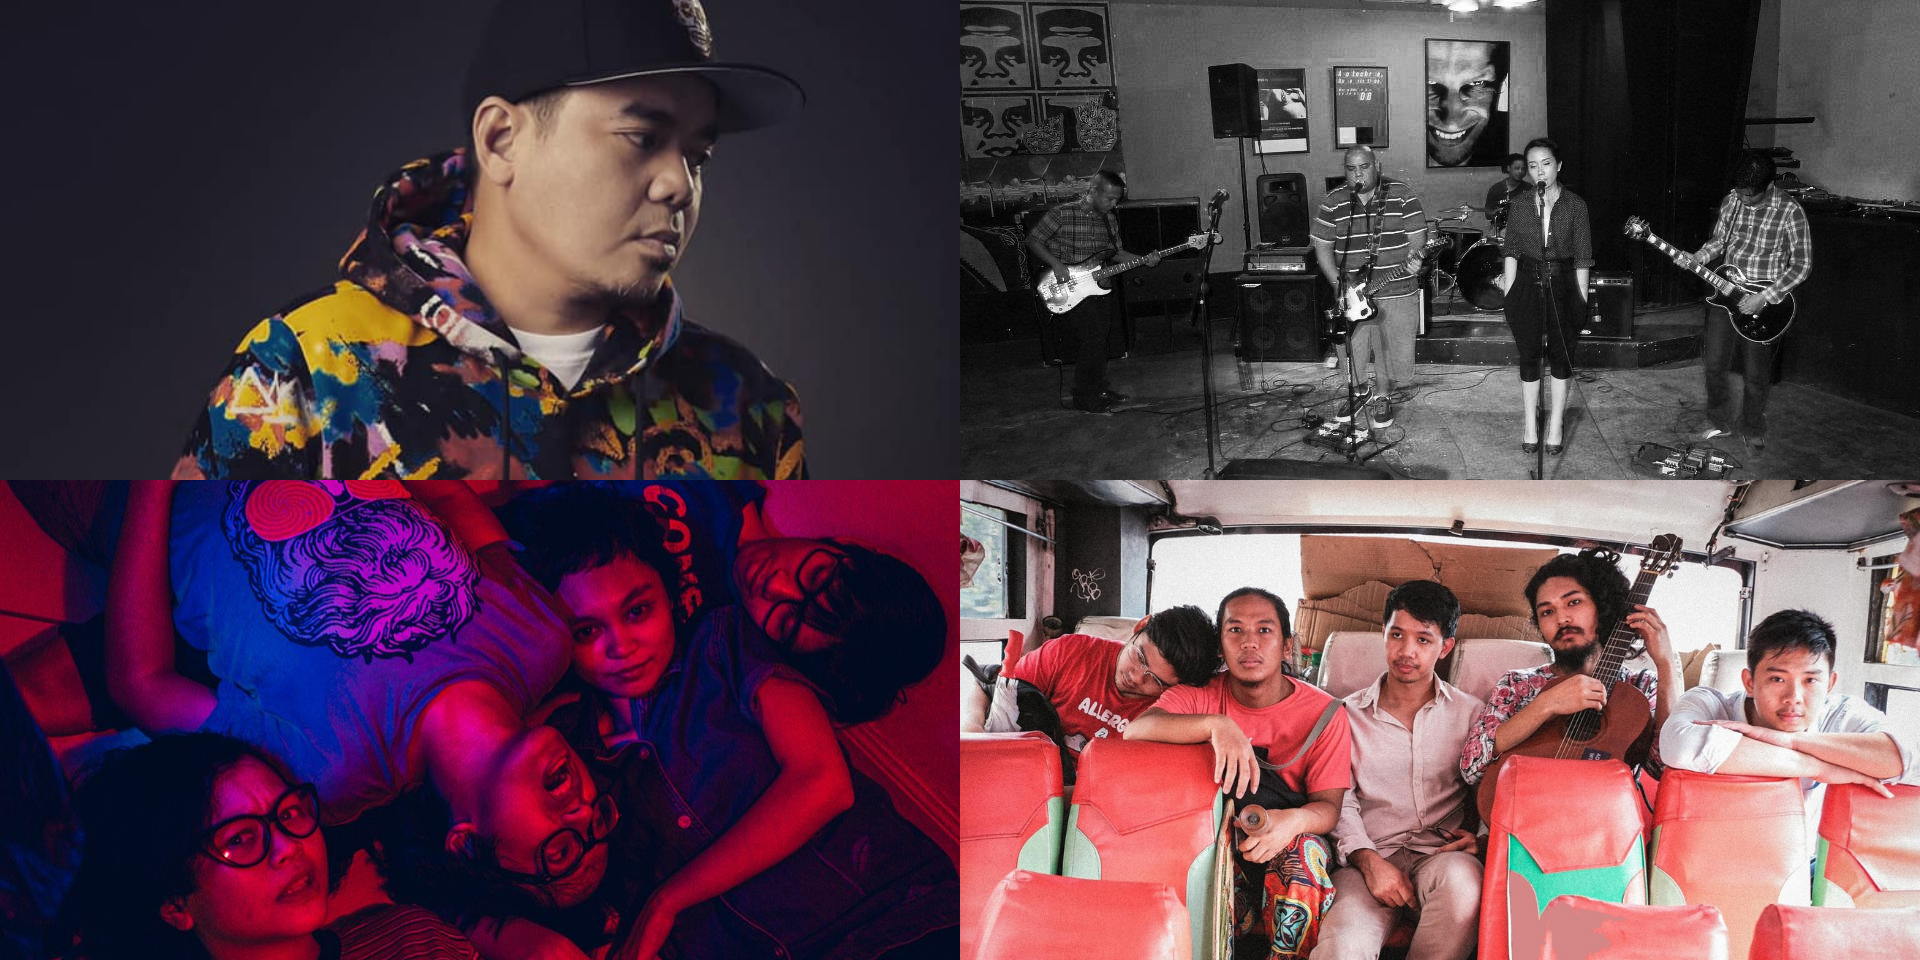 The Buildings, Gloc-9, Pinkmen, Soft Pillow Kisses, and more release new music – listen